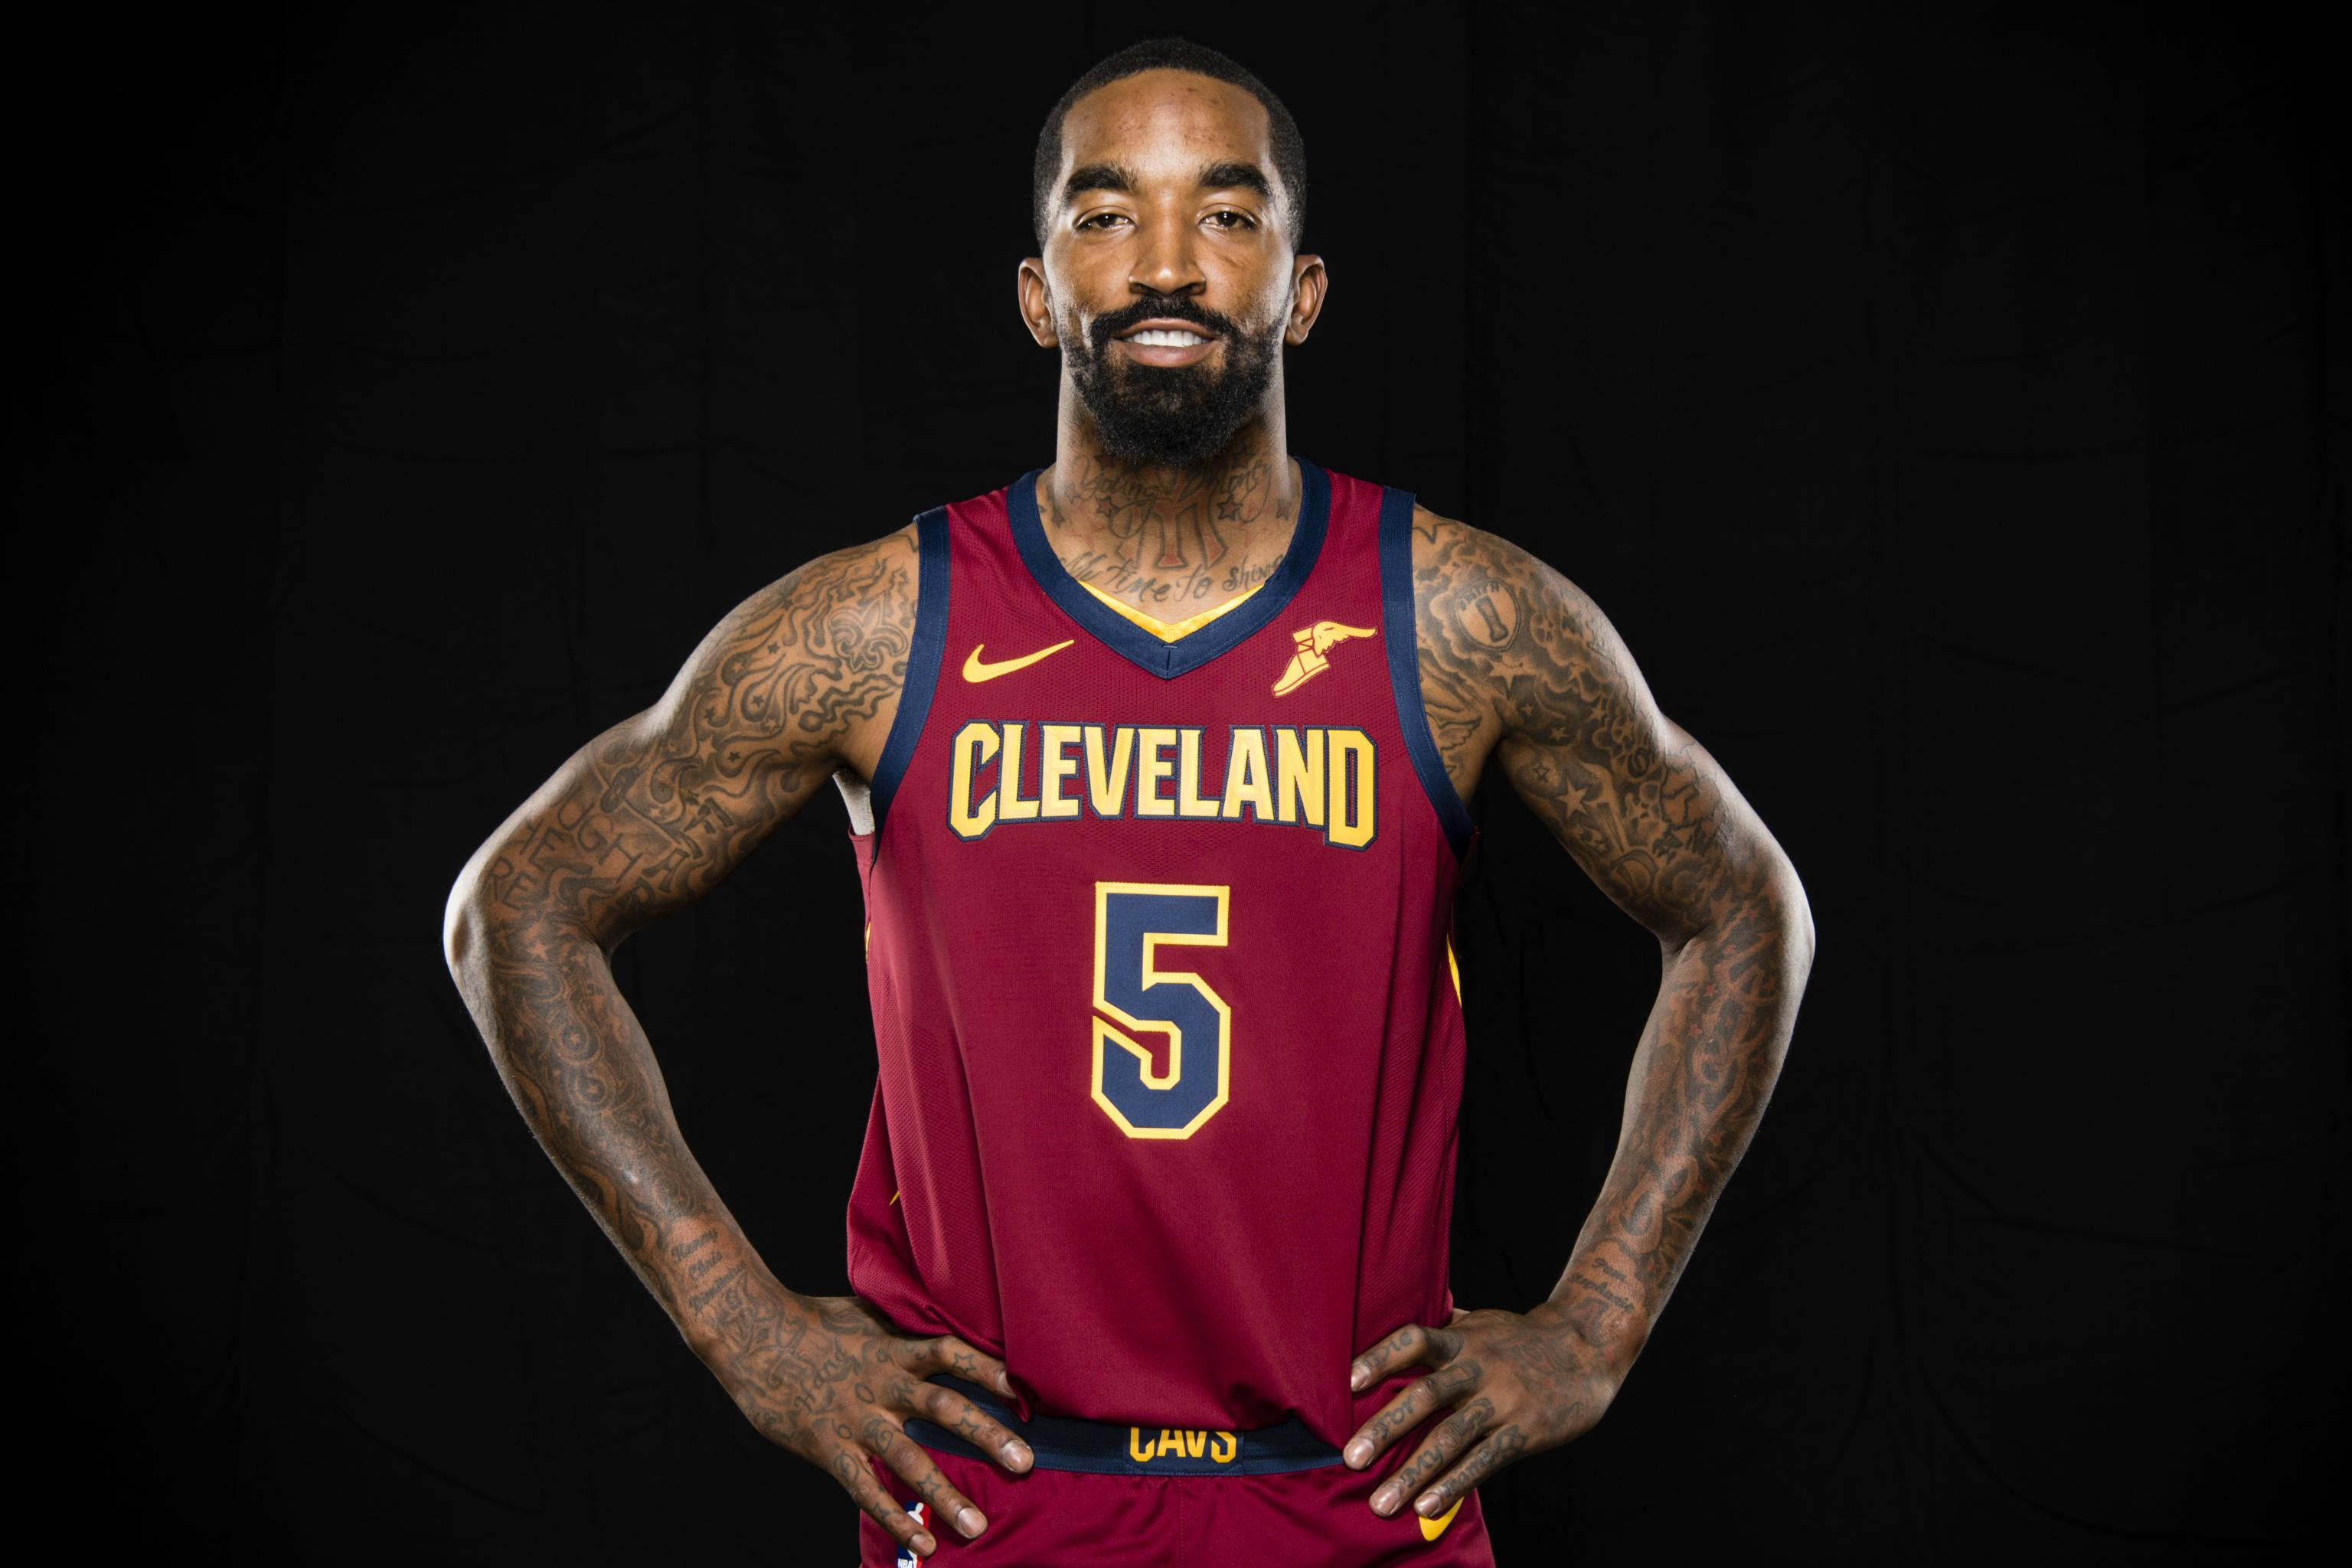 JR Smith Says NBA Will Fine Him For 'Supreme' Tattoo If He Doesn't